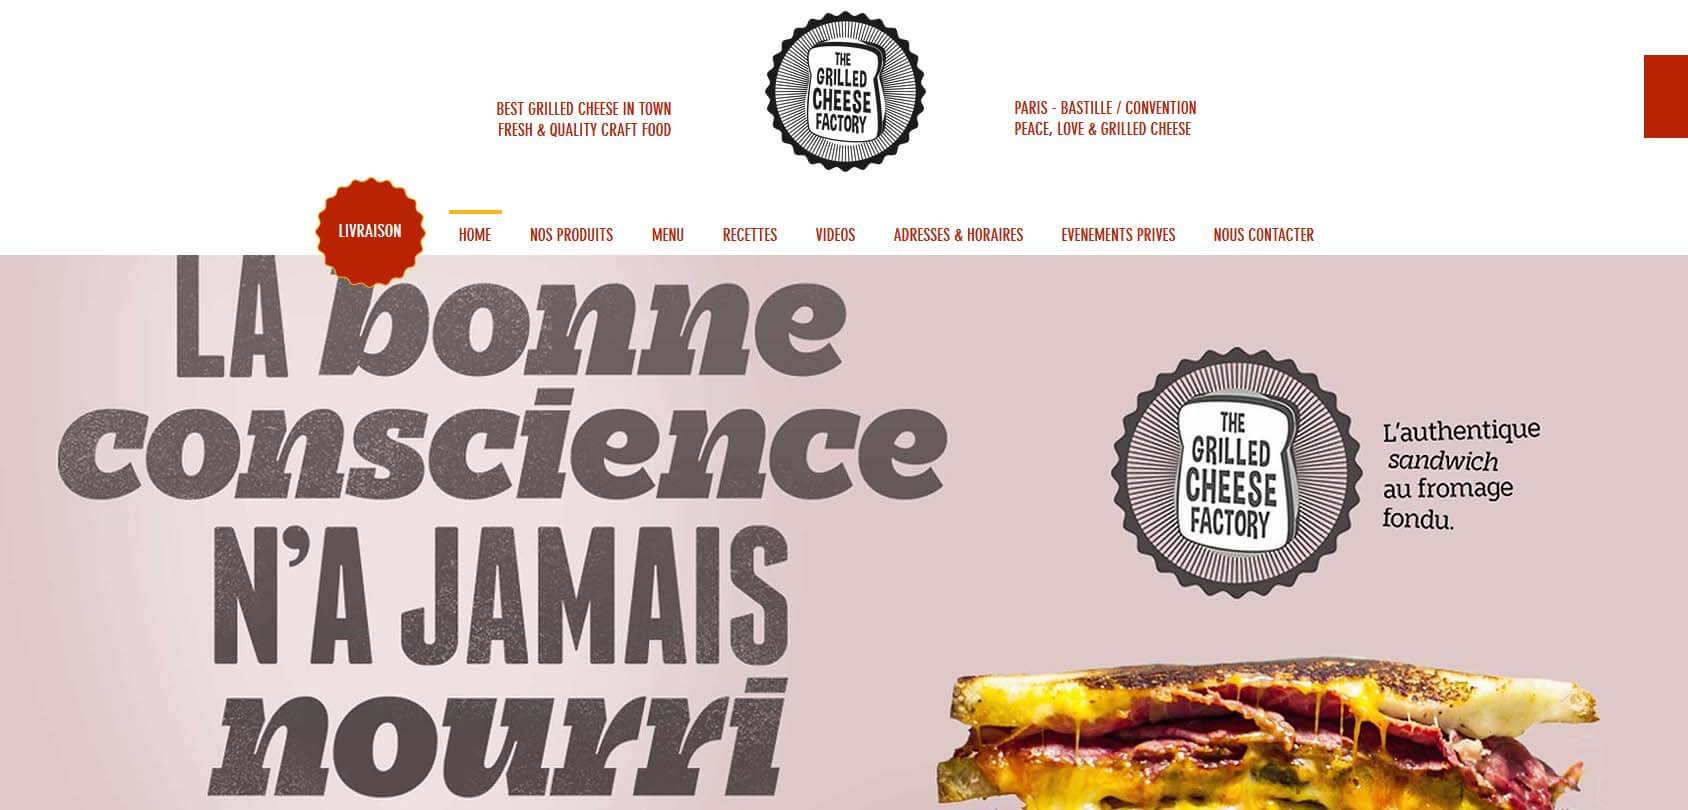 The Grilled Cheese Factory Homepage